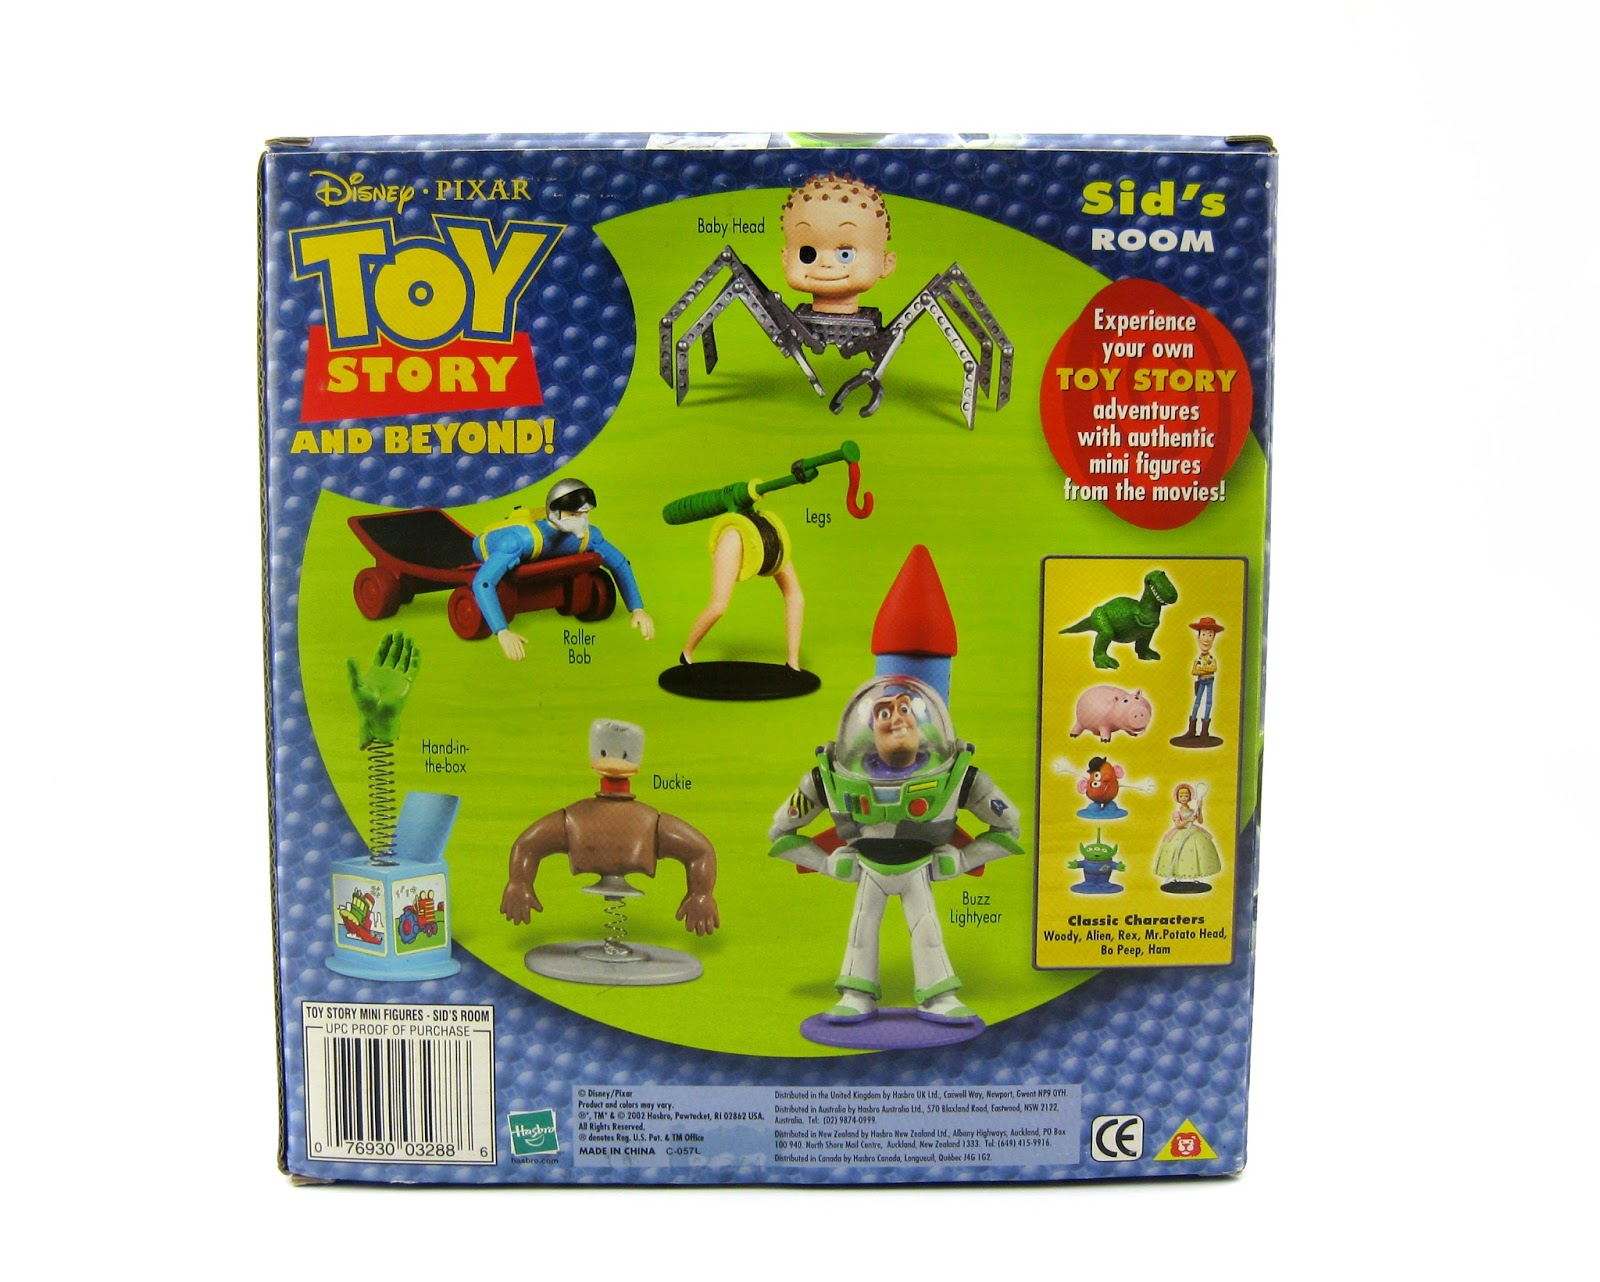 Toy Story Action Figures Set : Dan the pixar fan toy story sid s room figure gift pack hasbro